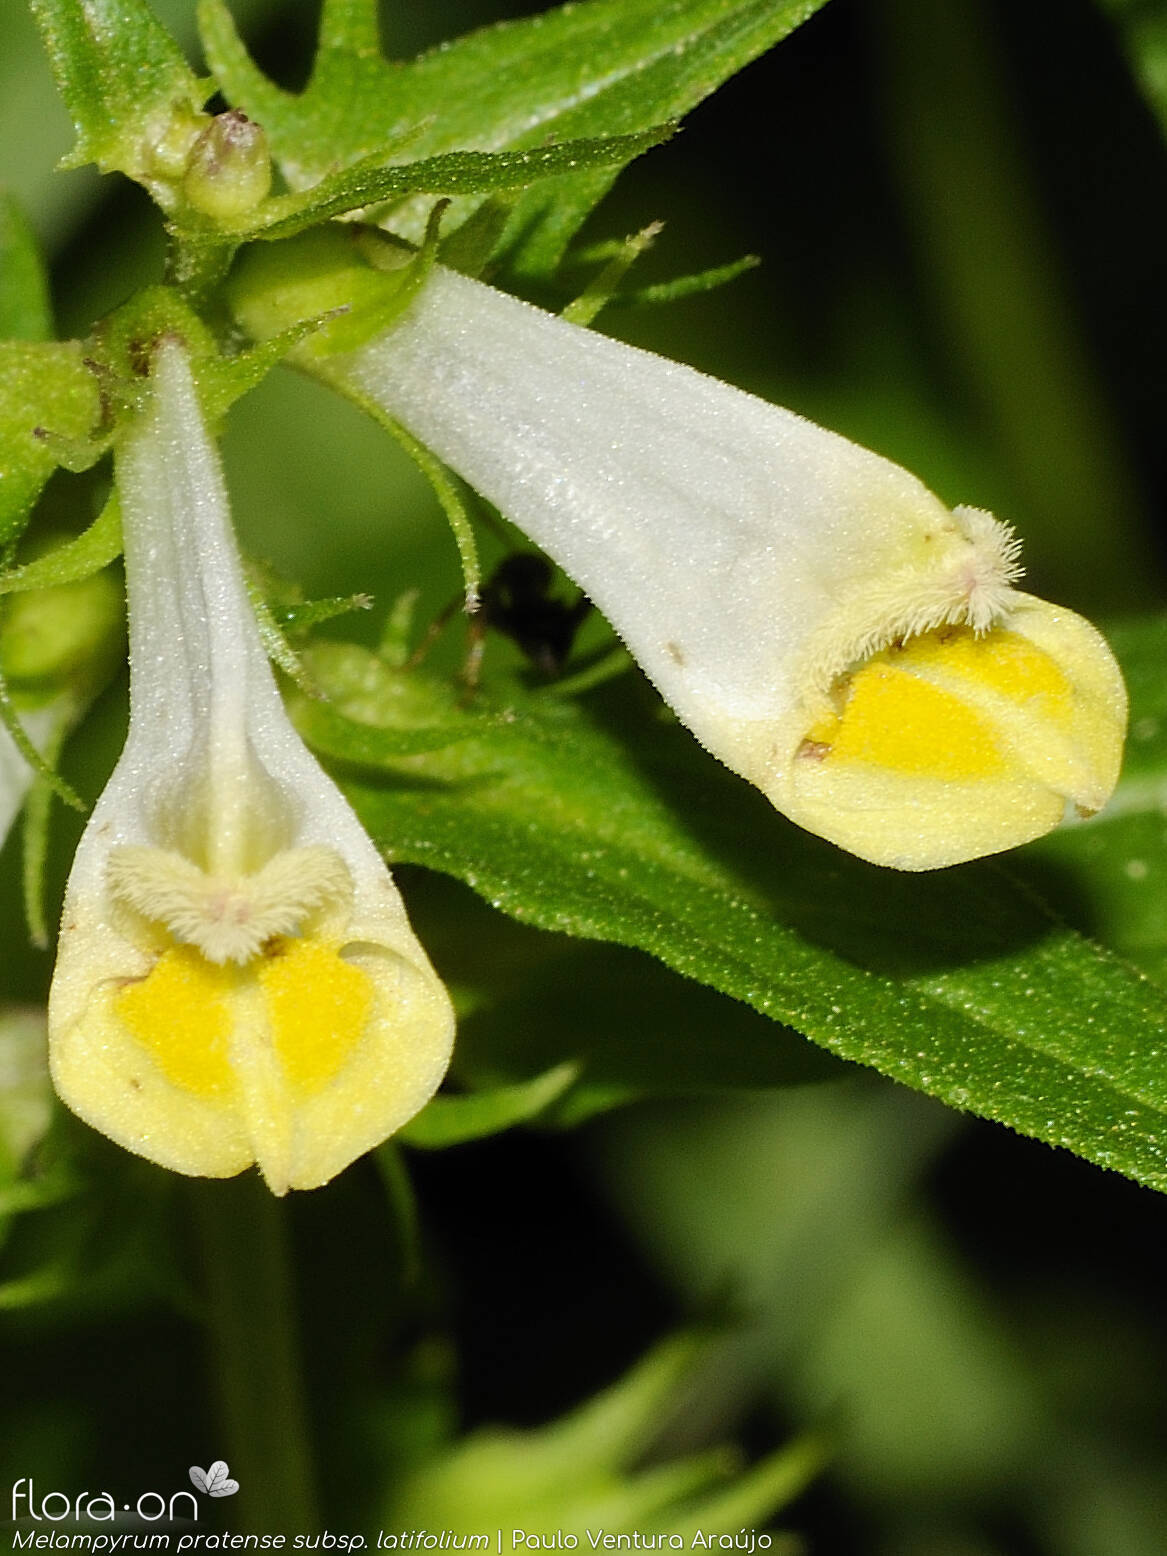 Melampyrum pratense latifolium - Flor (close-up) | Paulo Ventura Araújo; CC BY-NC 4.0